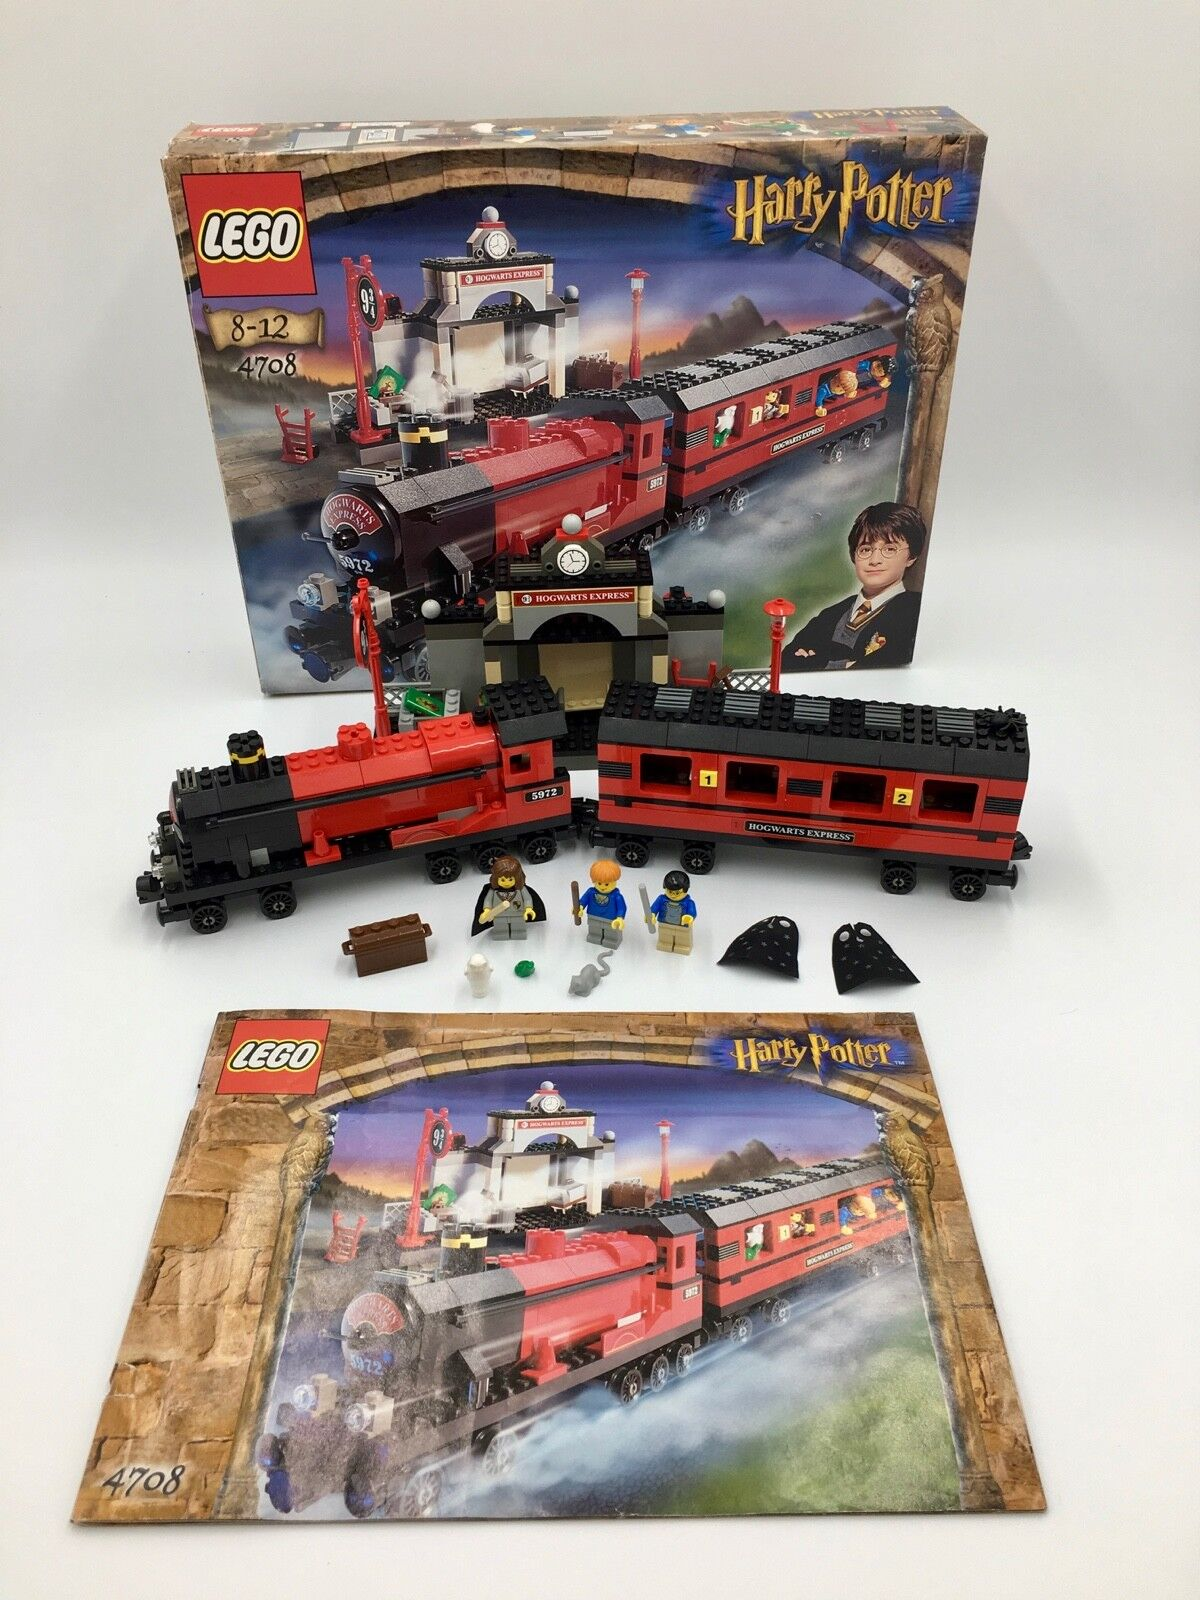 Lego 4708 Harry Potter Hogwarts Express Box & Instructions Excellent Condition